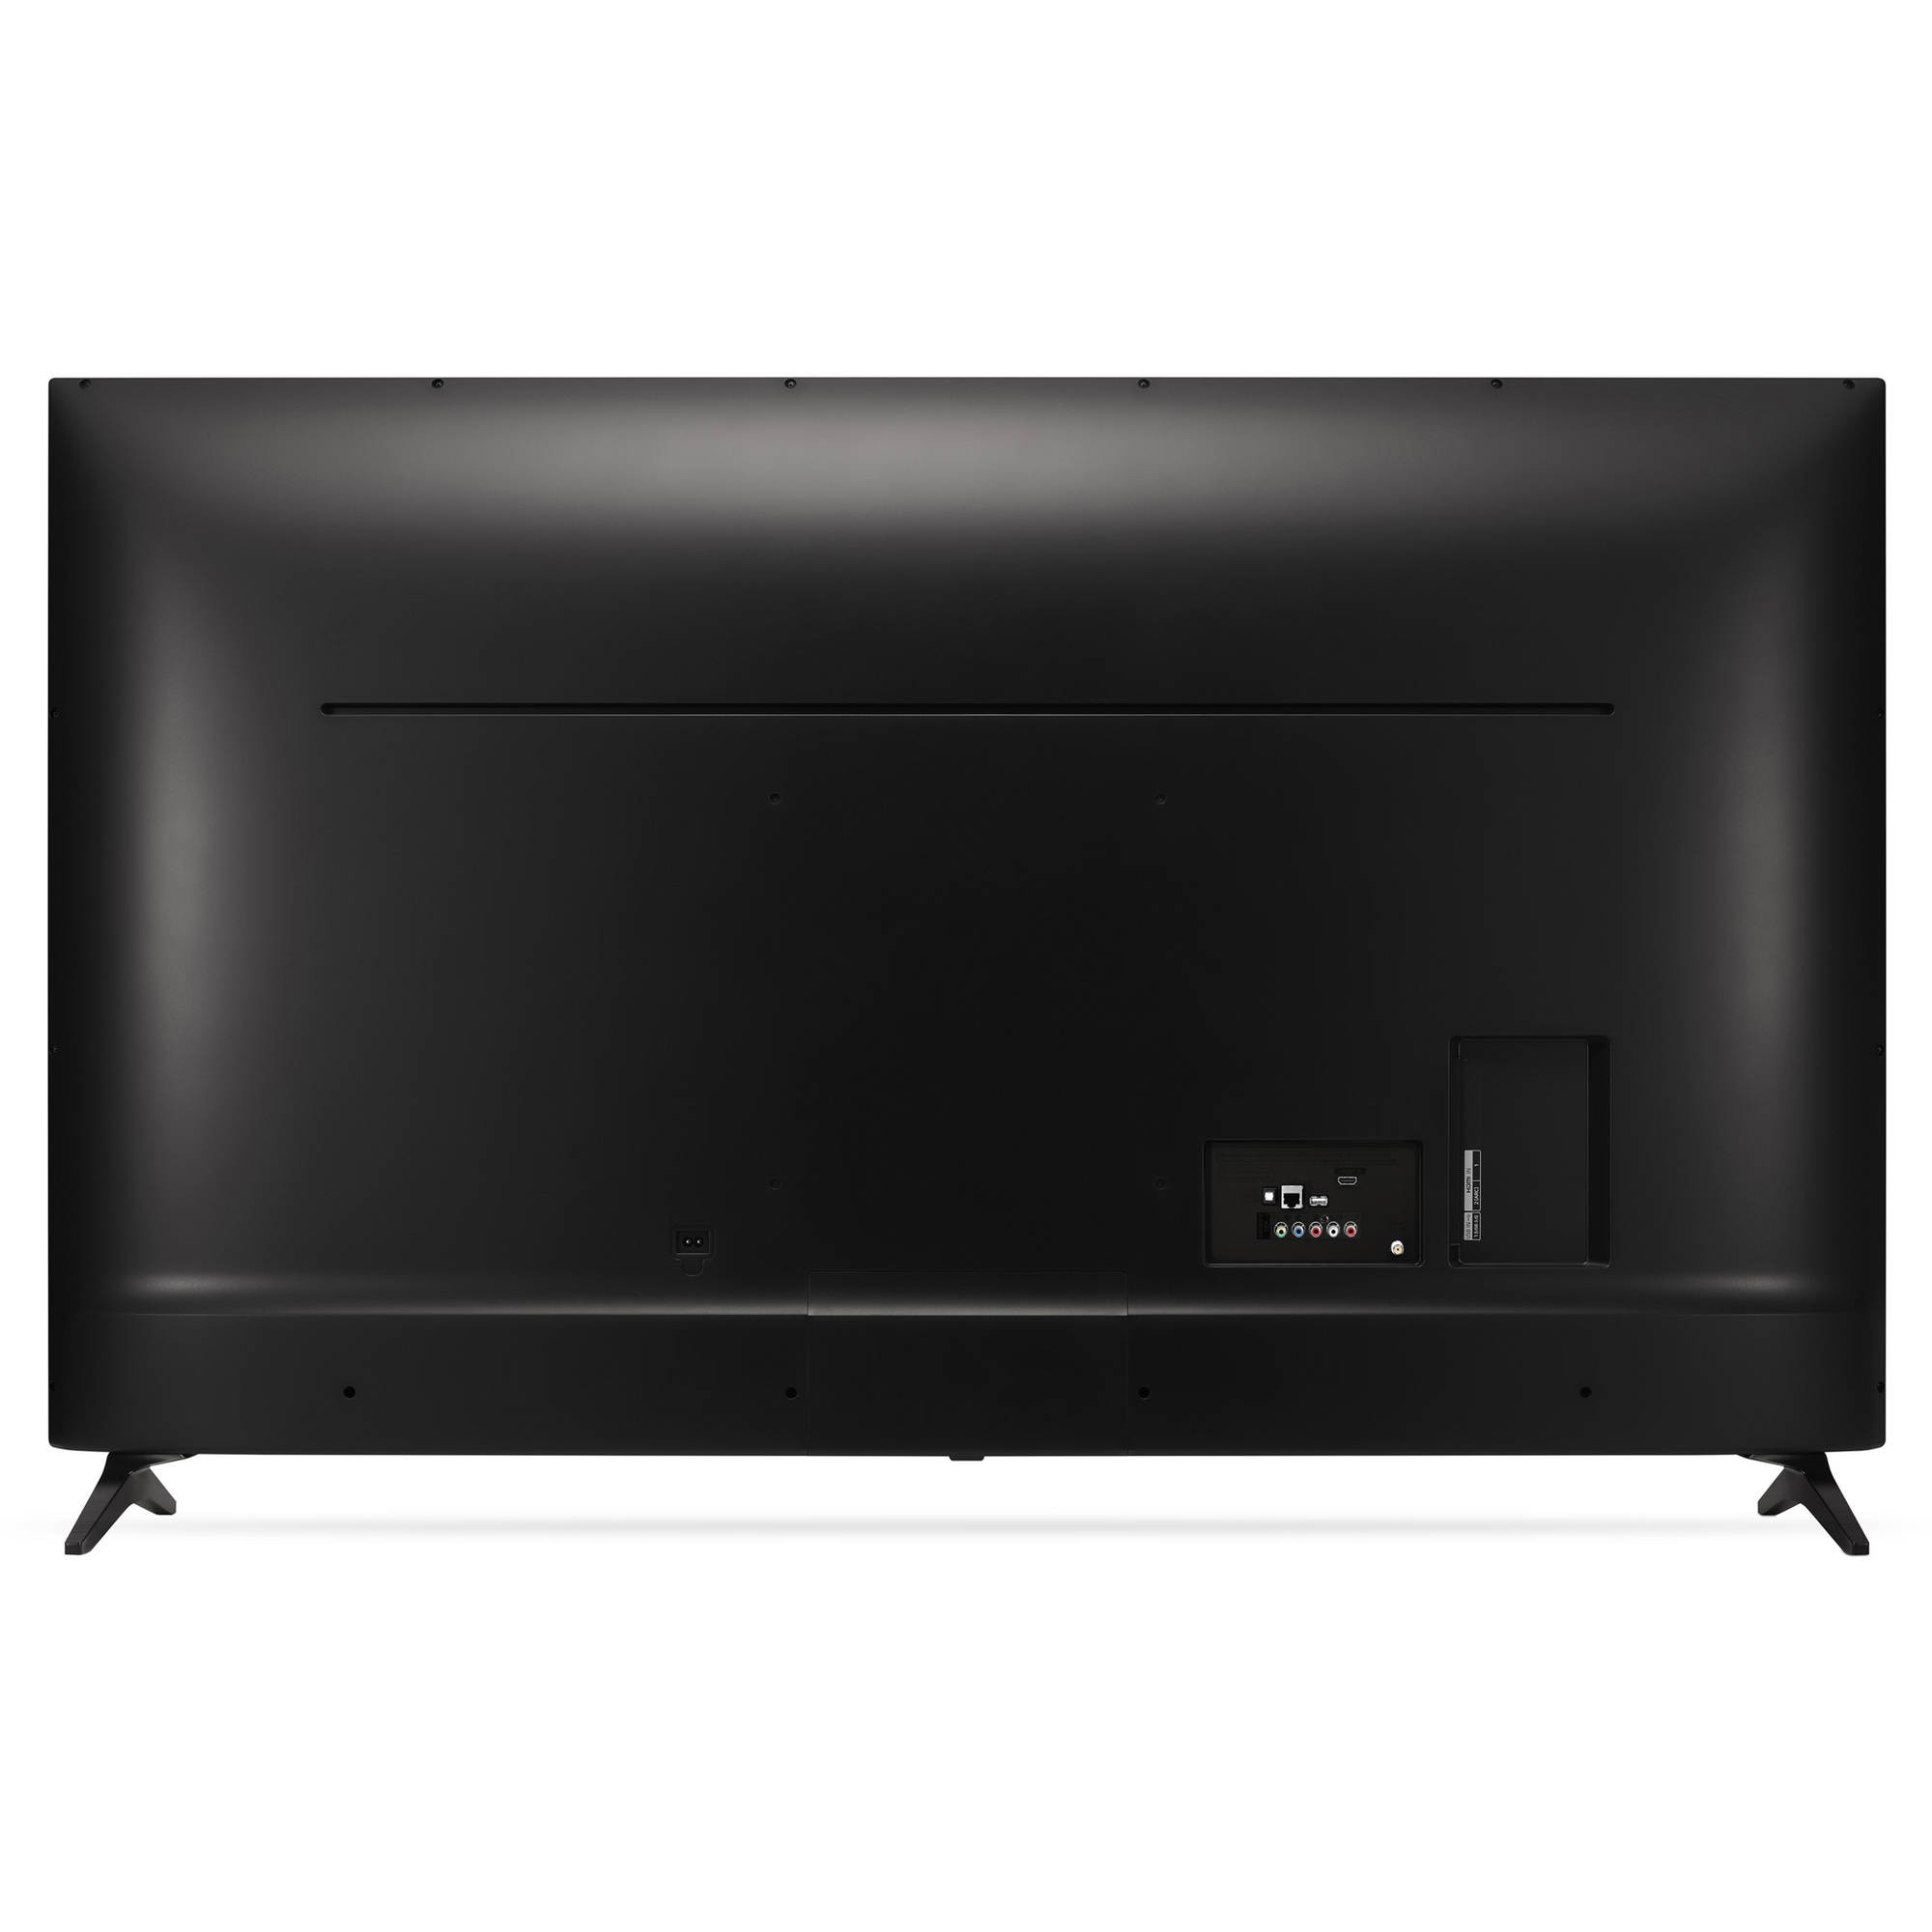 "Tv Lg 43 4k Contemporáneo Lg 43"" Class Uj6300 Series 4k Ultra Hd Smart Led Tv Of Tv Lg 43 4k Adorable Lg 43uf690v 43"" 4k Ultra Hd Tv Lg From Powerhouse Uk"